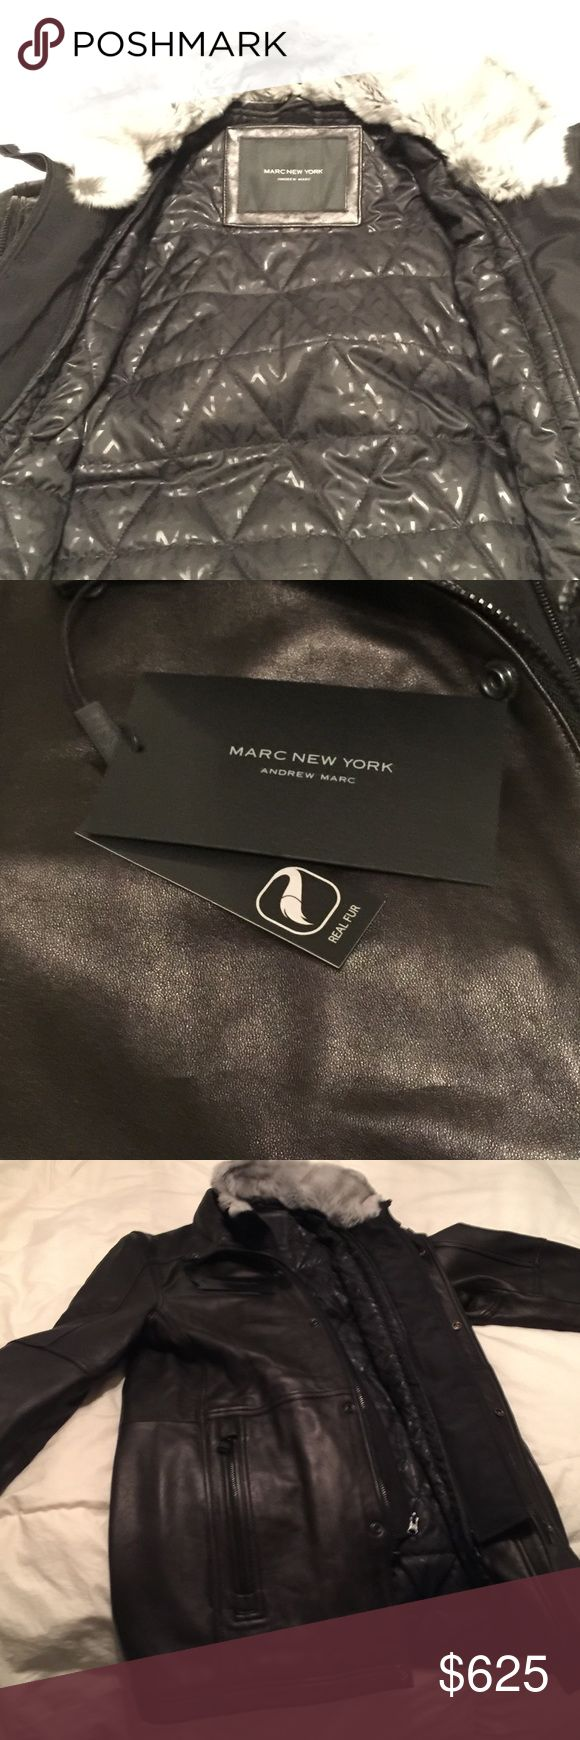 Andrew Marc New York Mens leather jacket with tags Authentic! Brand new with original tags! Never worn! Andrew Marc New York Mens leather jacket with real fur size small!! NEGOTIABLE !!!! DID NOT FIT :( NEEDS A GOOD HOME! Andrew Marc Jackets & Coats